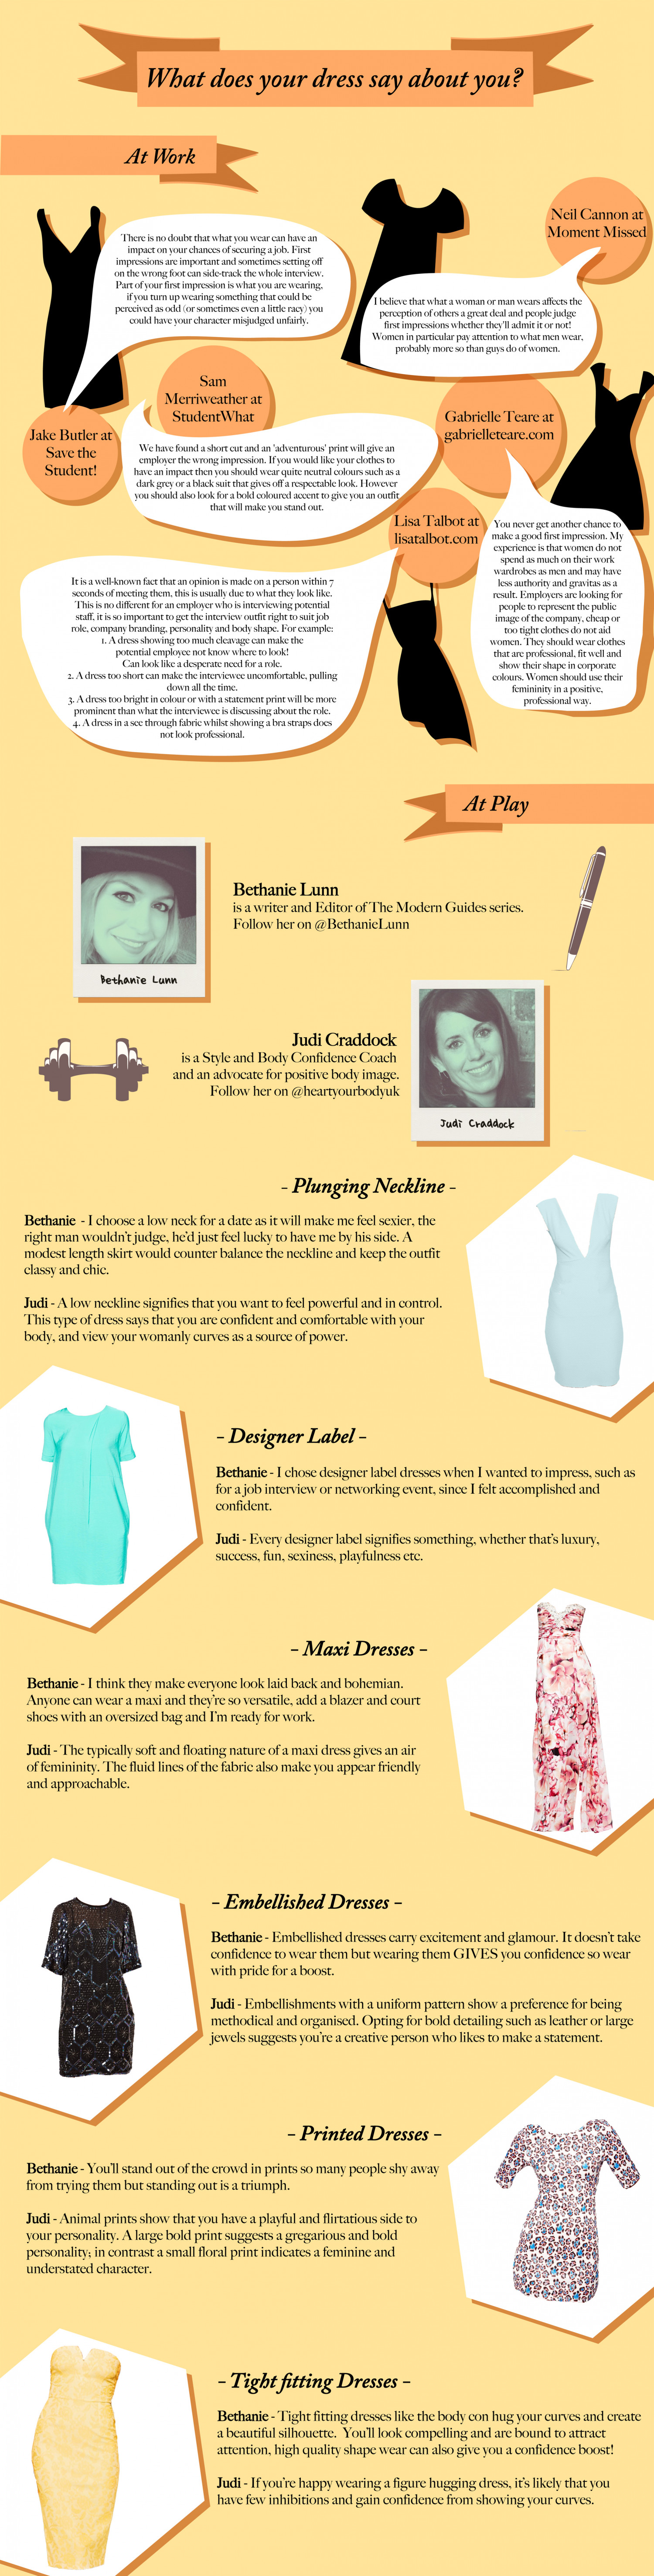 What Does Your Dress Say About You? Infographic